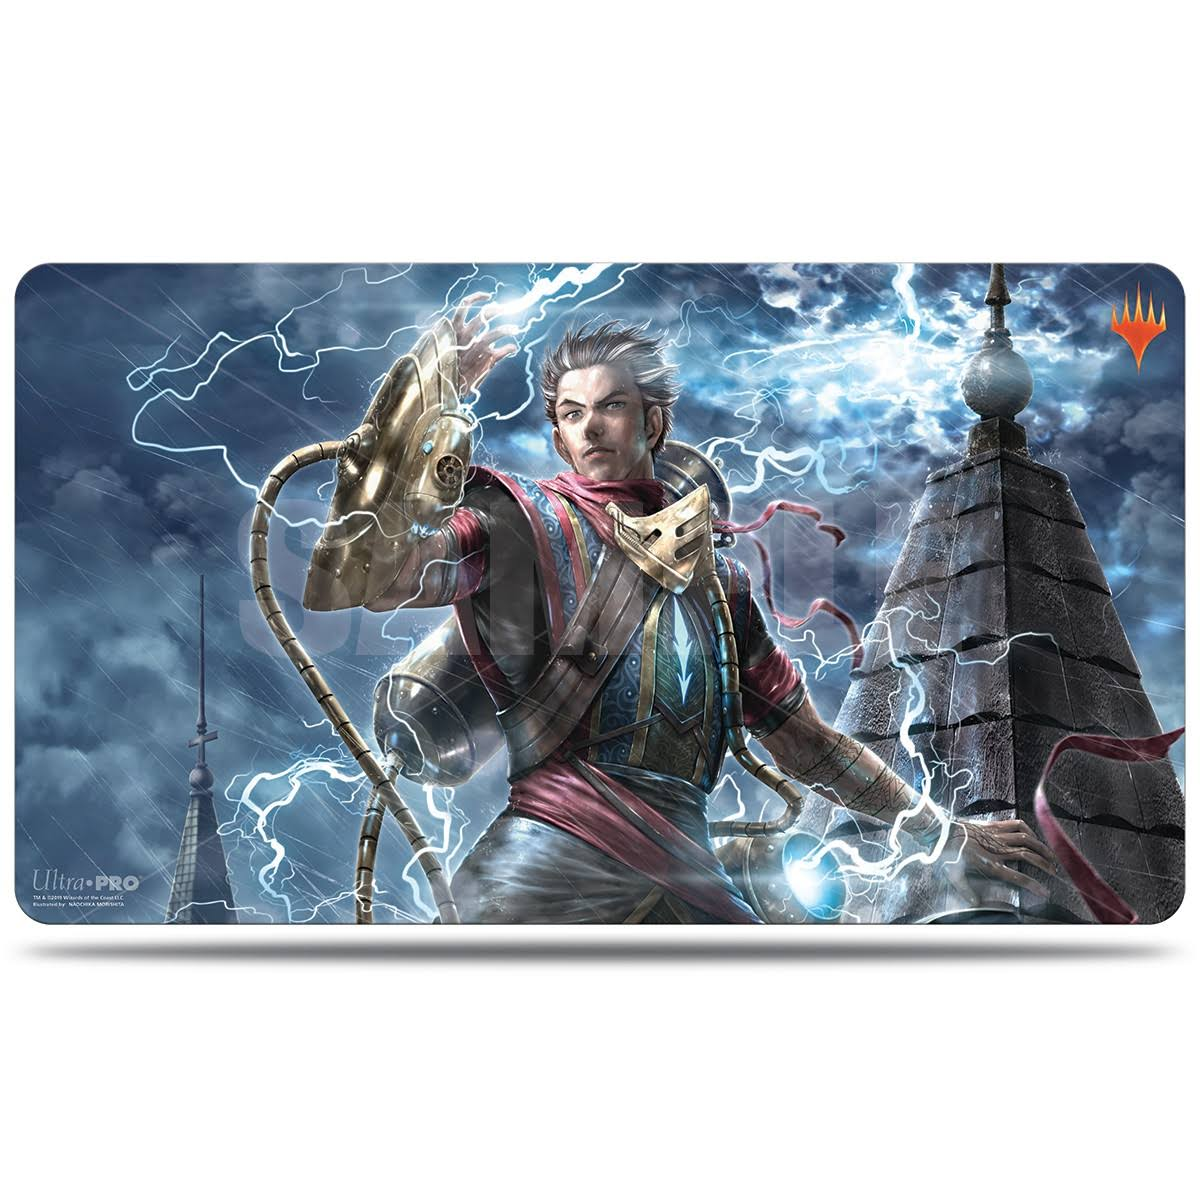 Ultra Pro Playmat: War of The Spark - RAL Zarek Alternate Art